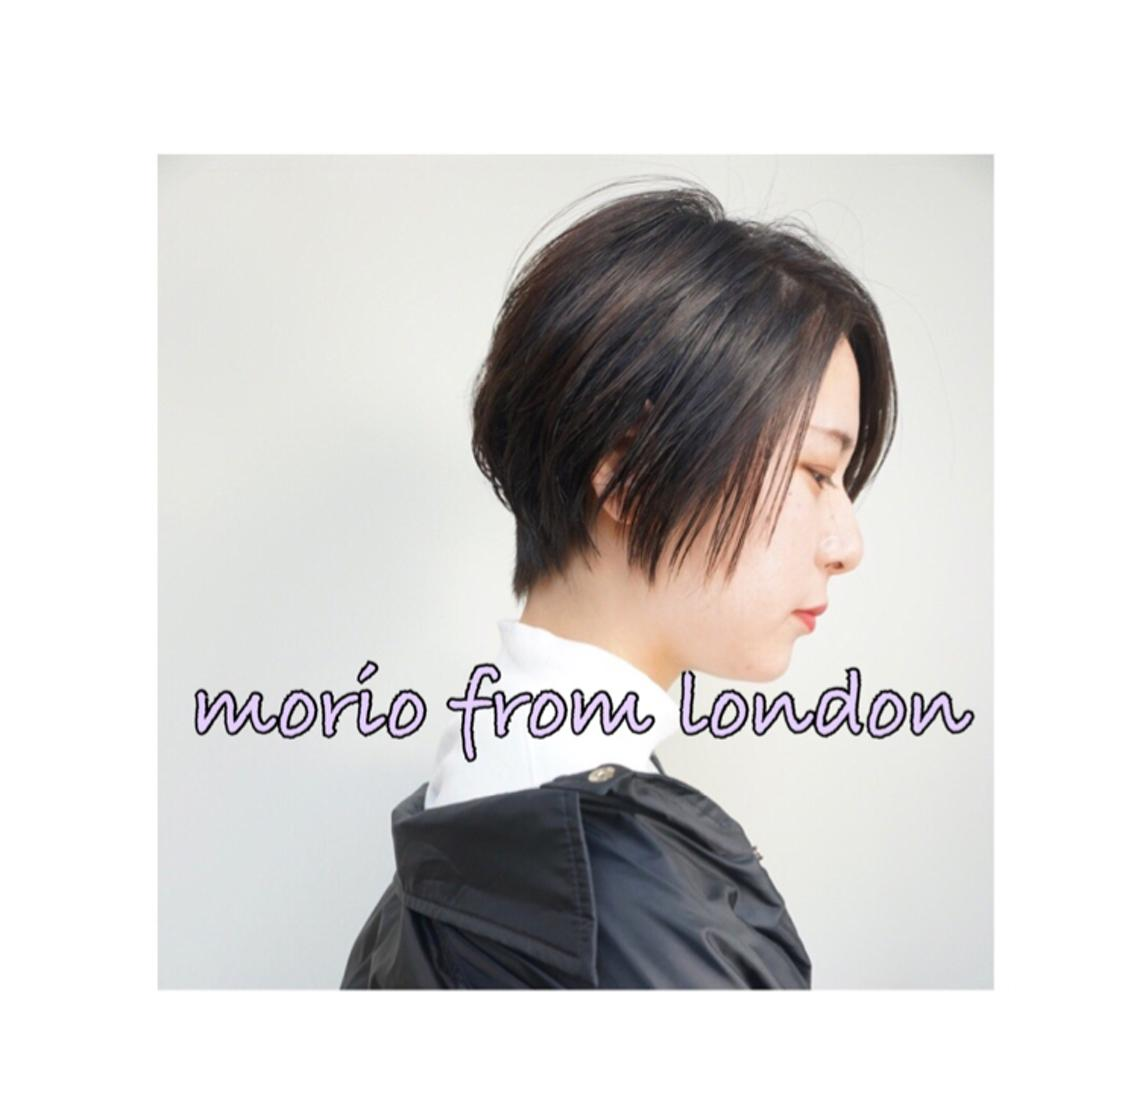 MORIO FROM LONDON 〔モリオ フロム ロンドン〕